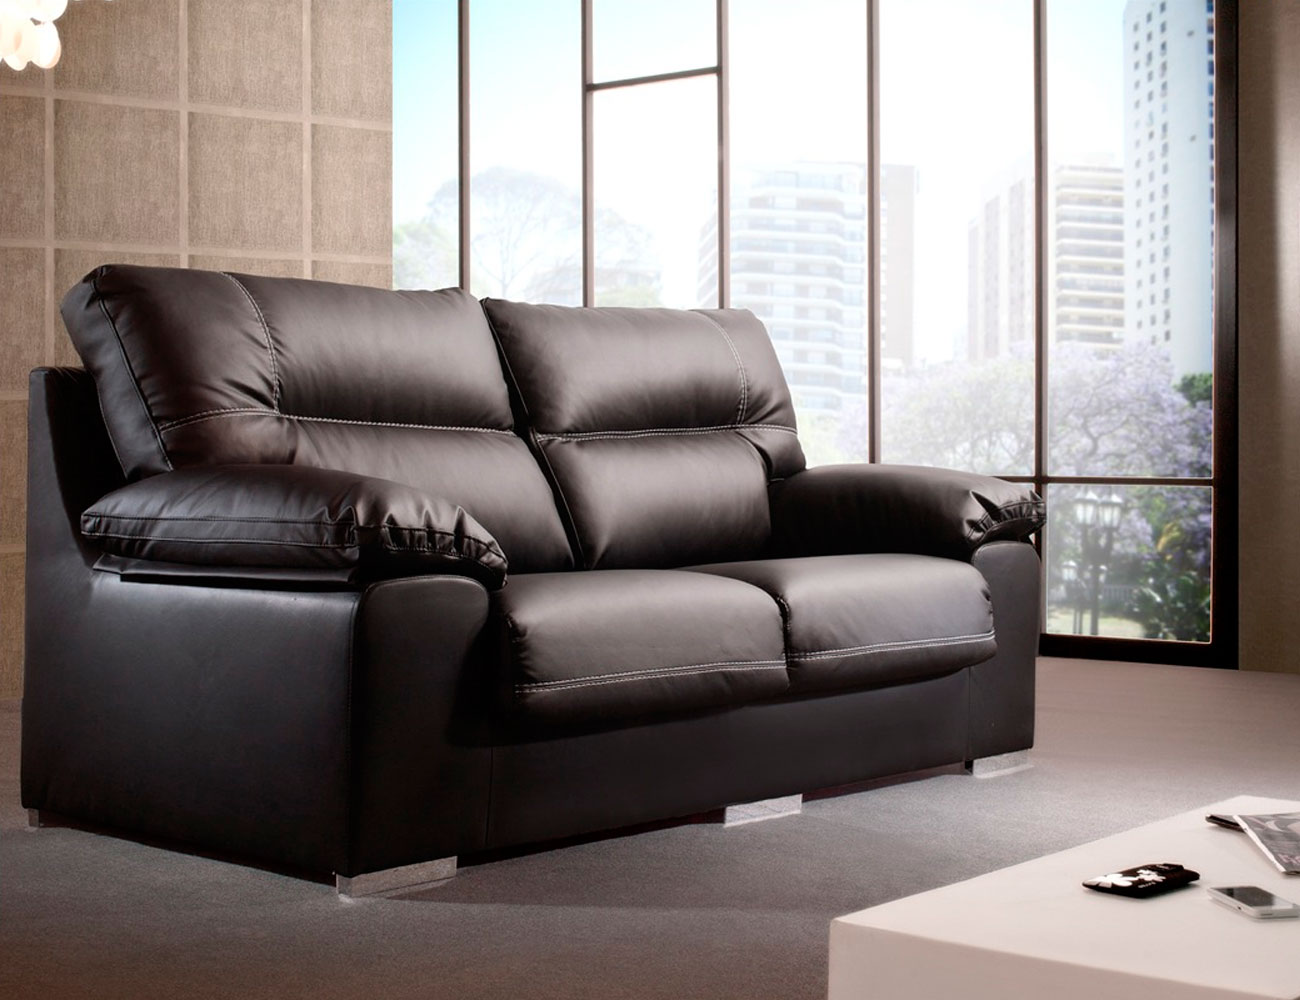 Sofa 3 plazas polipiel negro15